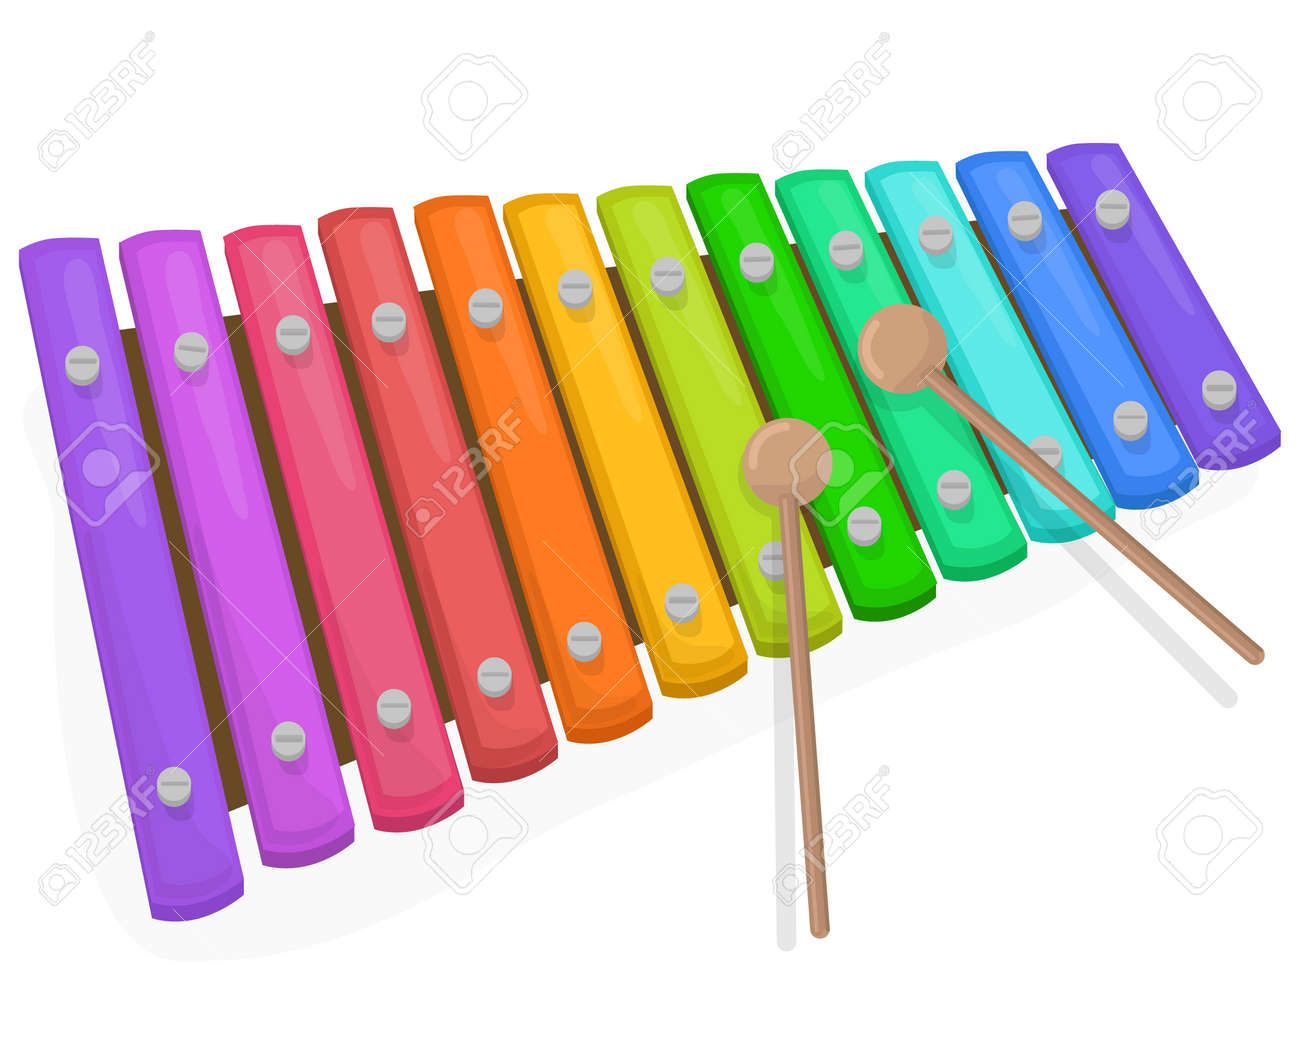 Colorful xylophone with mallets on a white background - 50129530